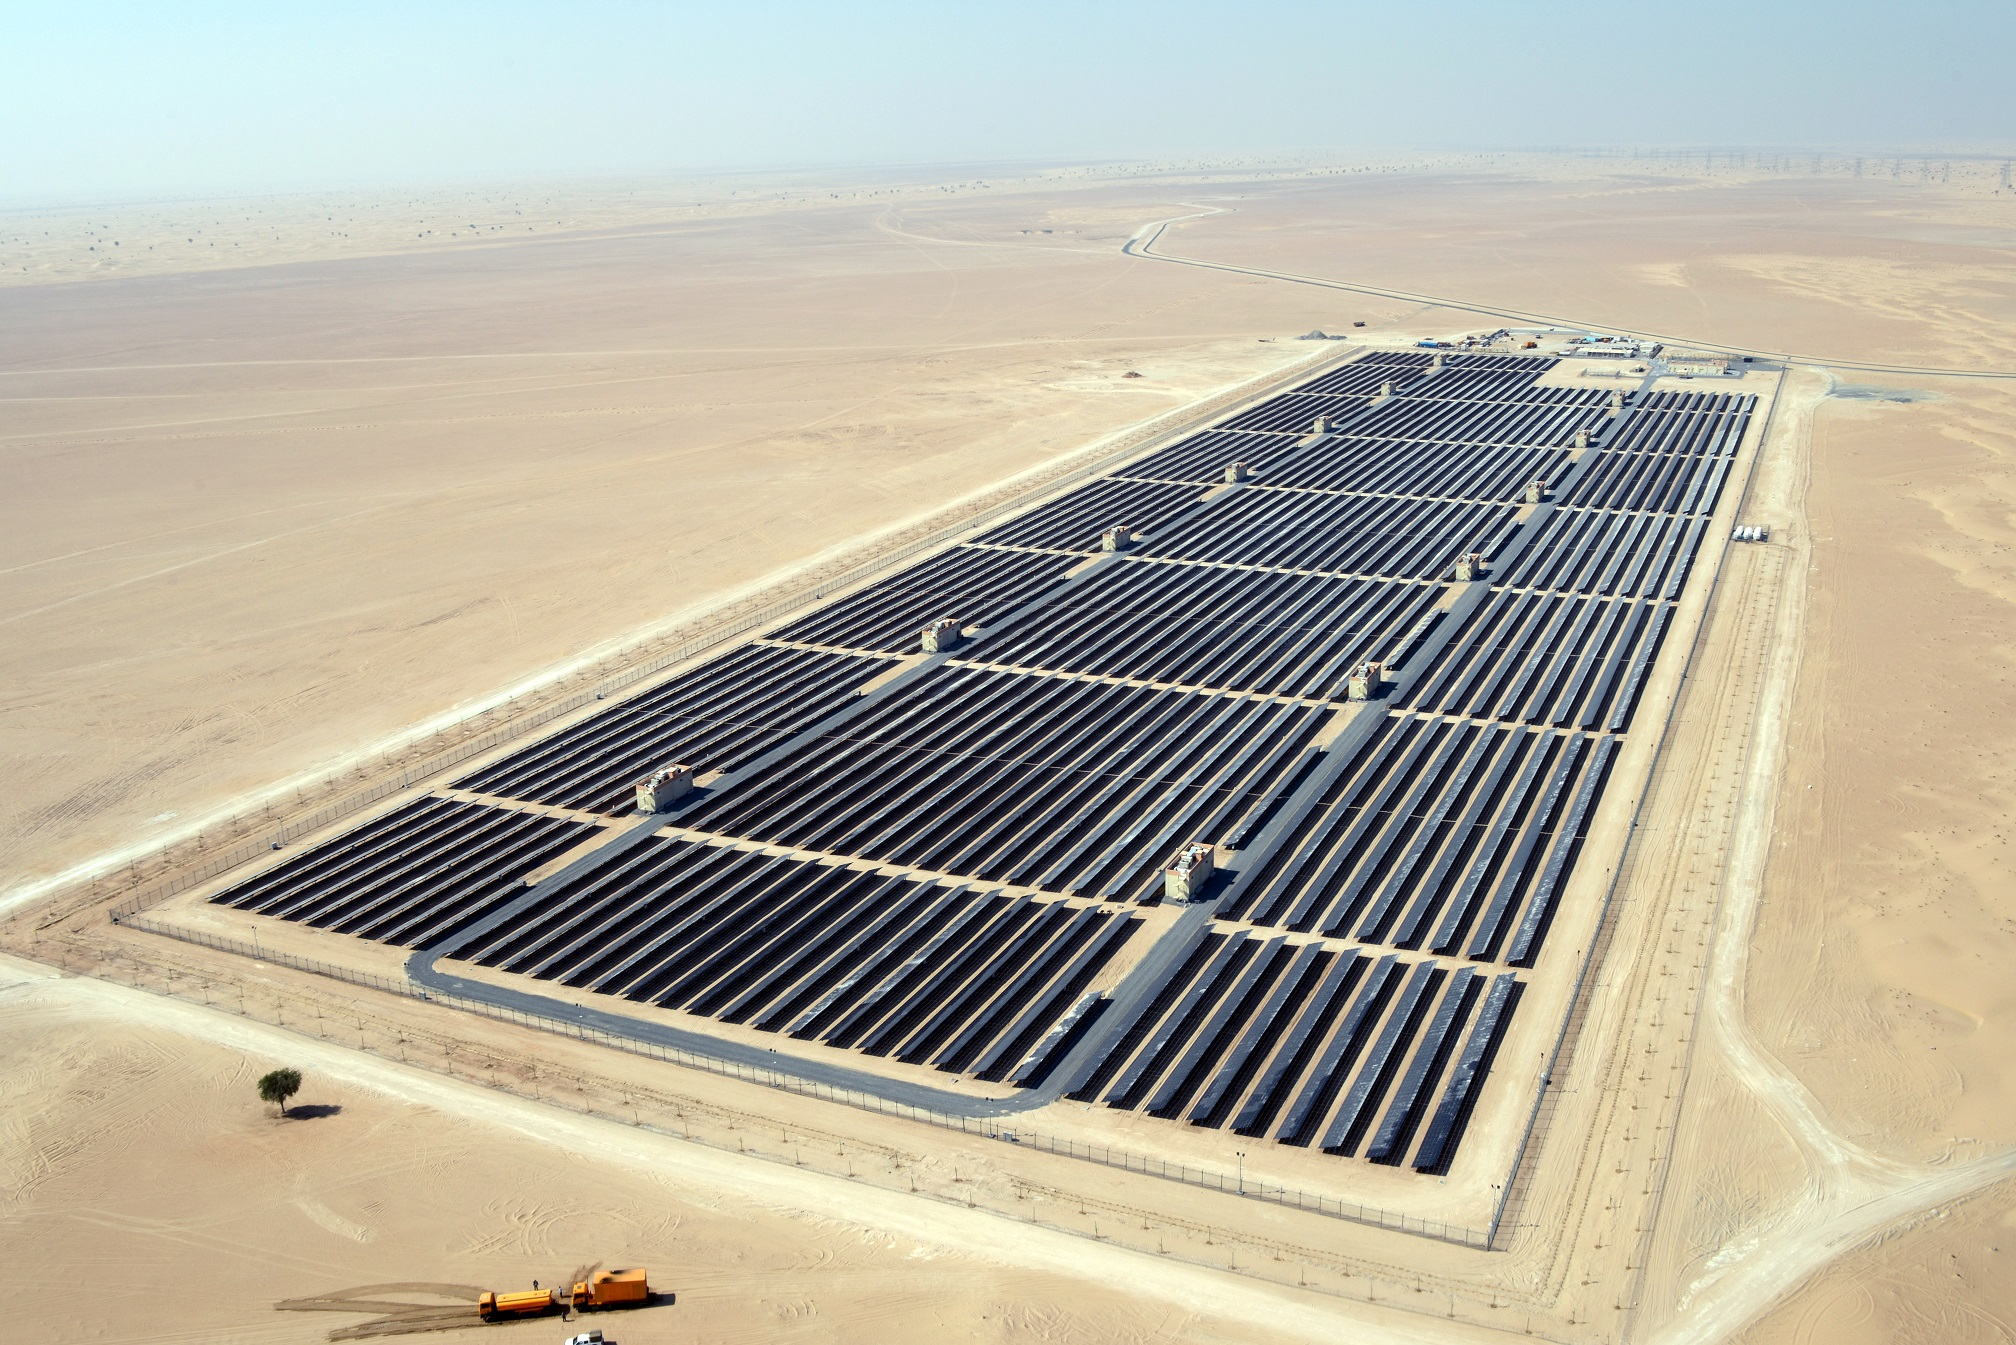 The new energy will look to spur the integration of clean energy into the UAE's energy mix. Image: First Solar